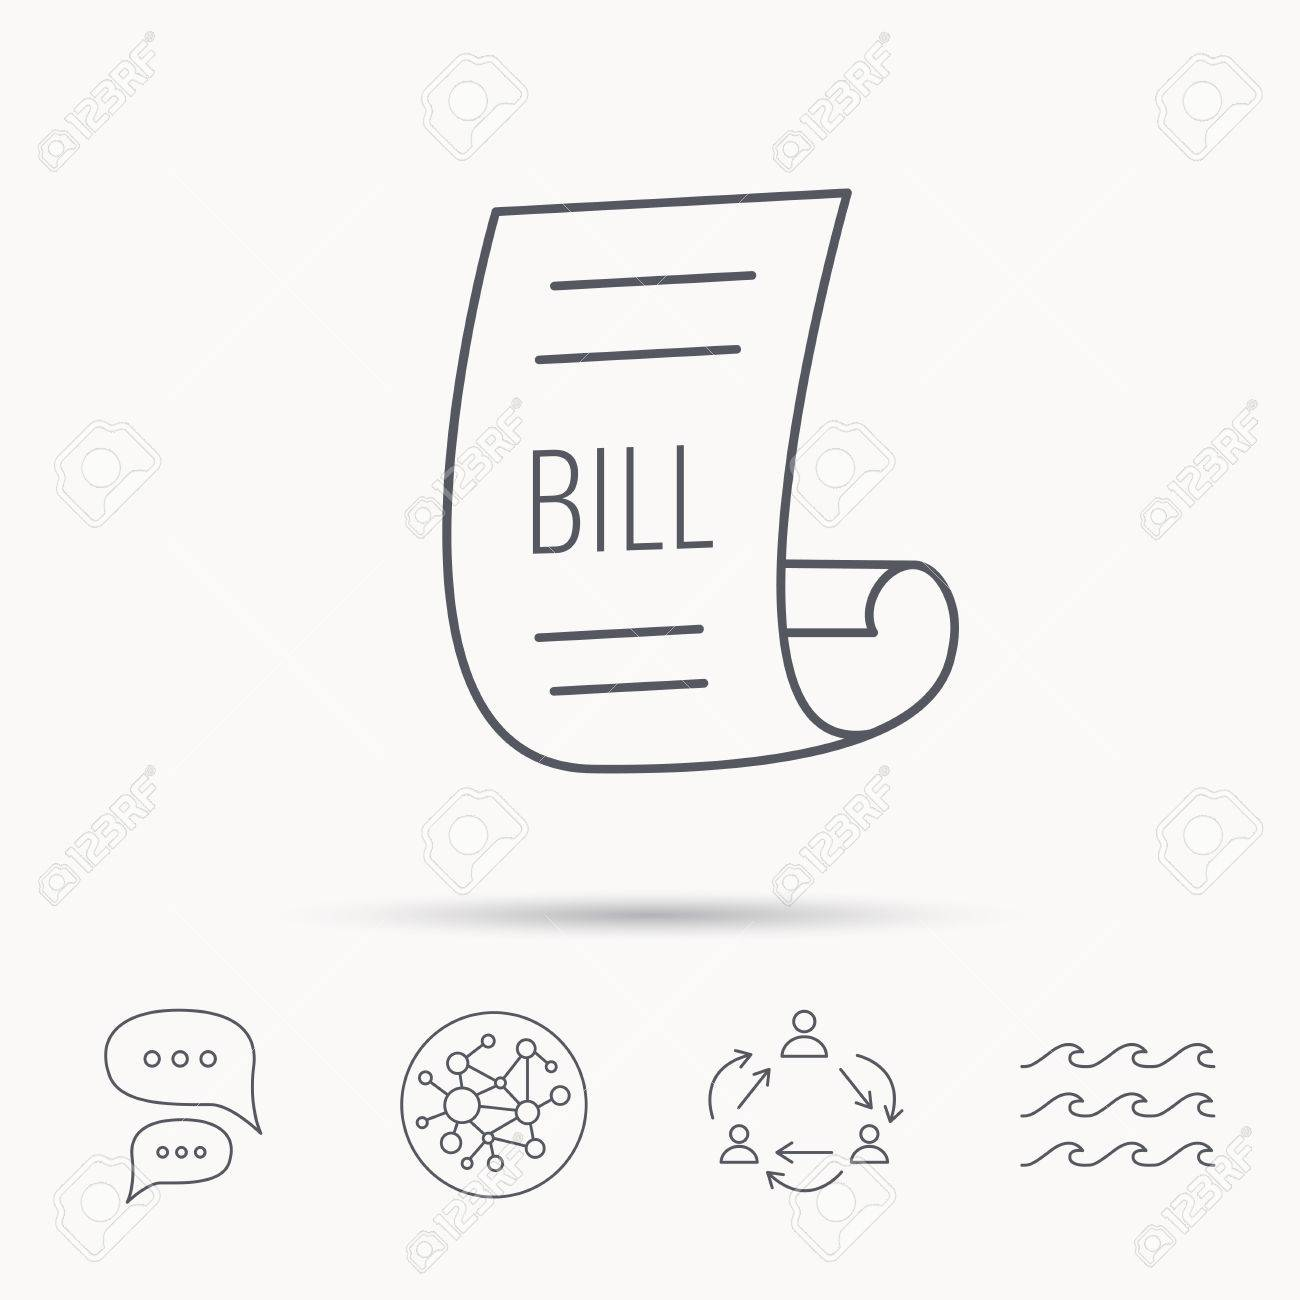 Bill Icon Pay Document Sign Business Invoice Or Receipt Symbol - Invoice ocean